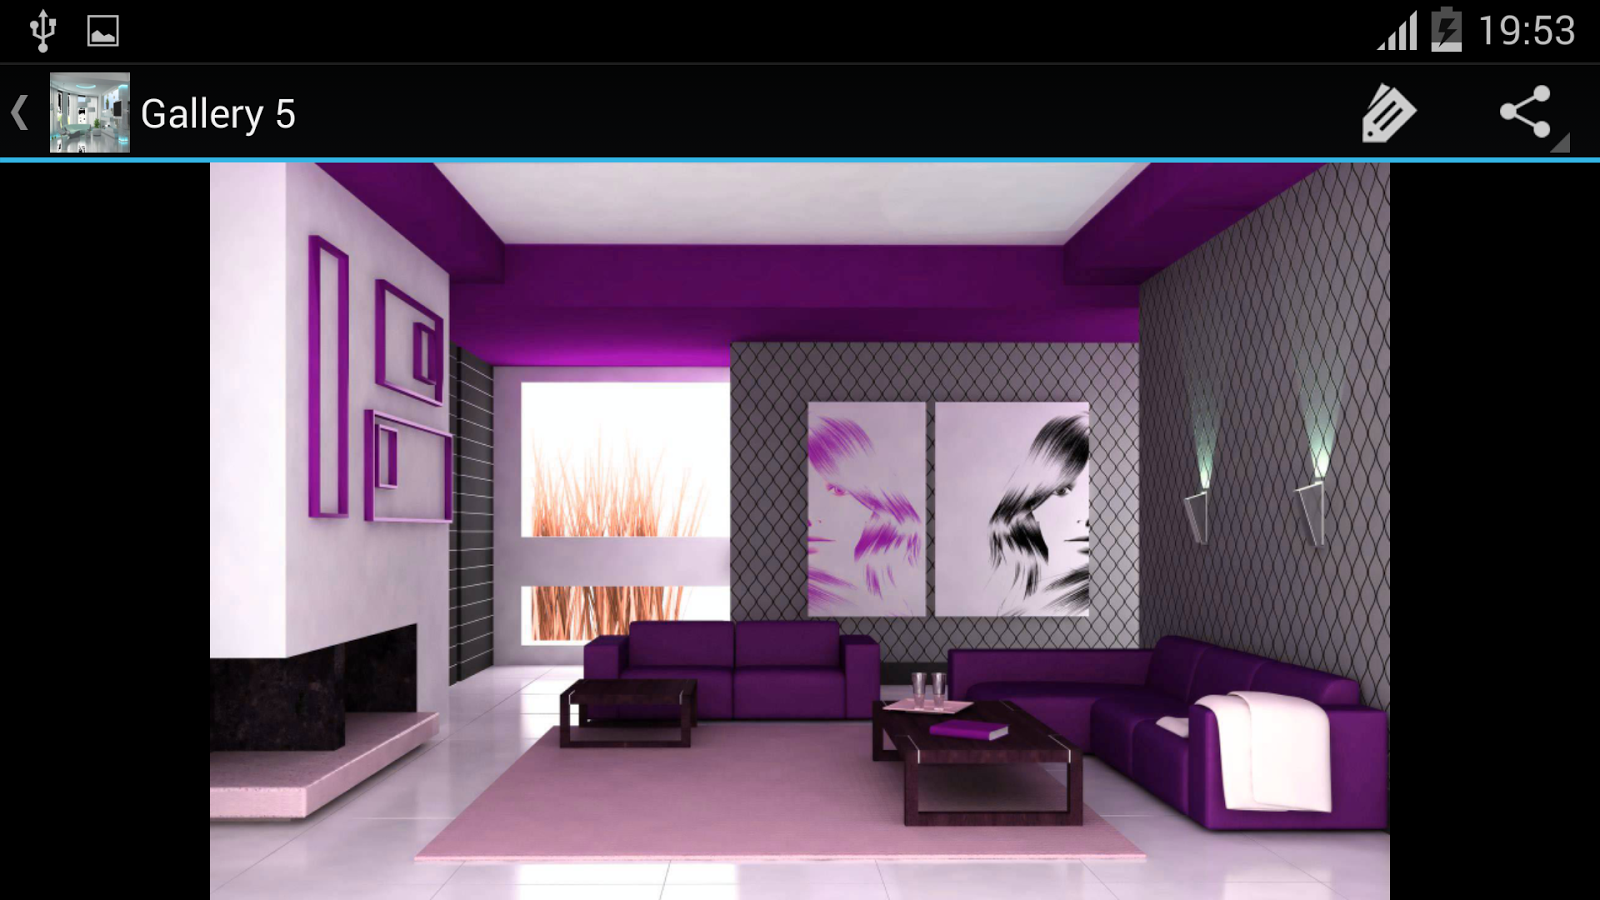 Wallpaper Room App Home Decor